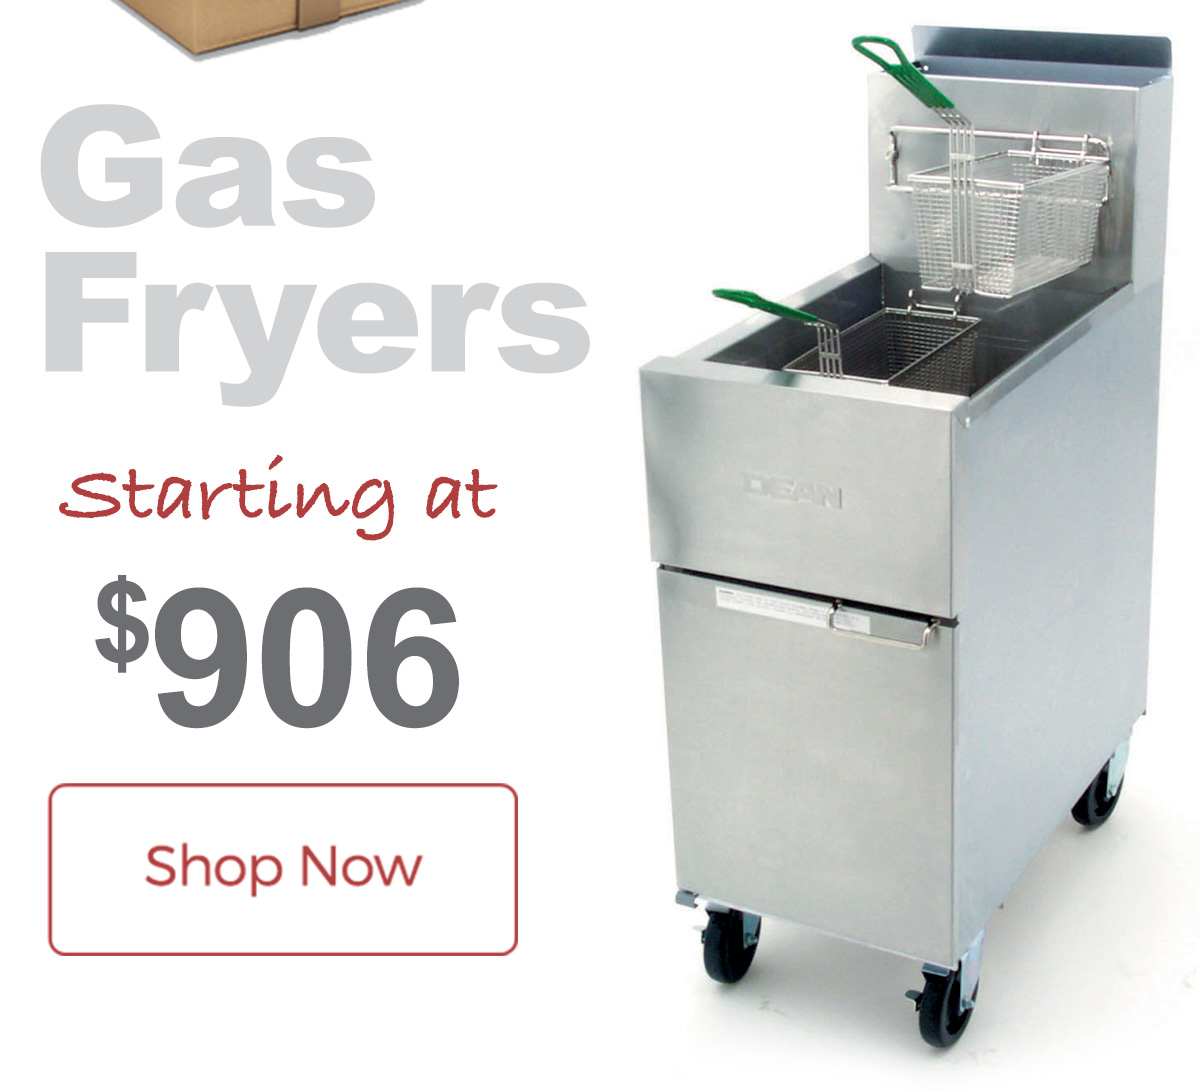 All Frymaster Gas Fryers ship free